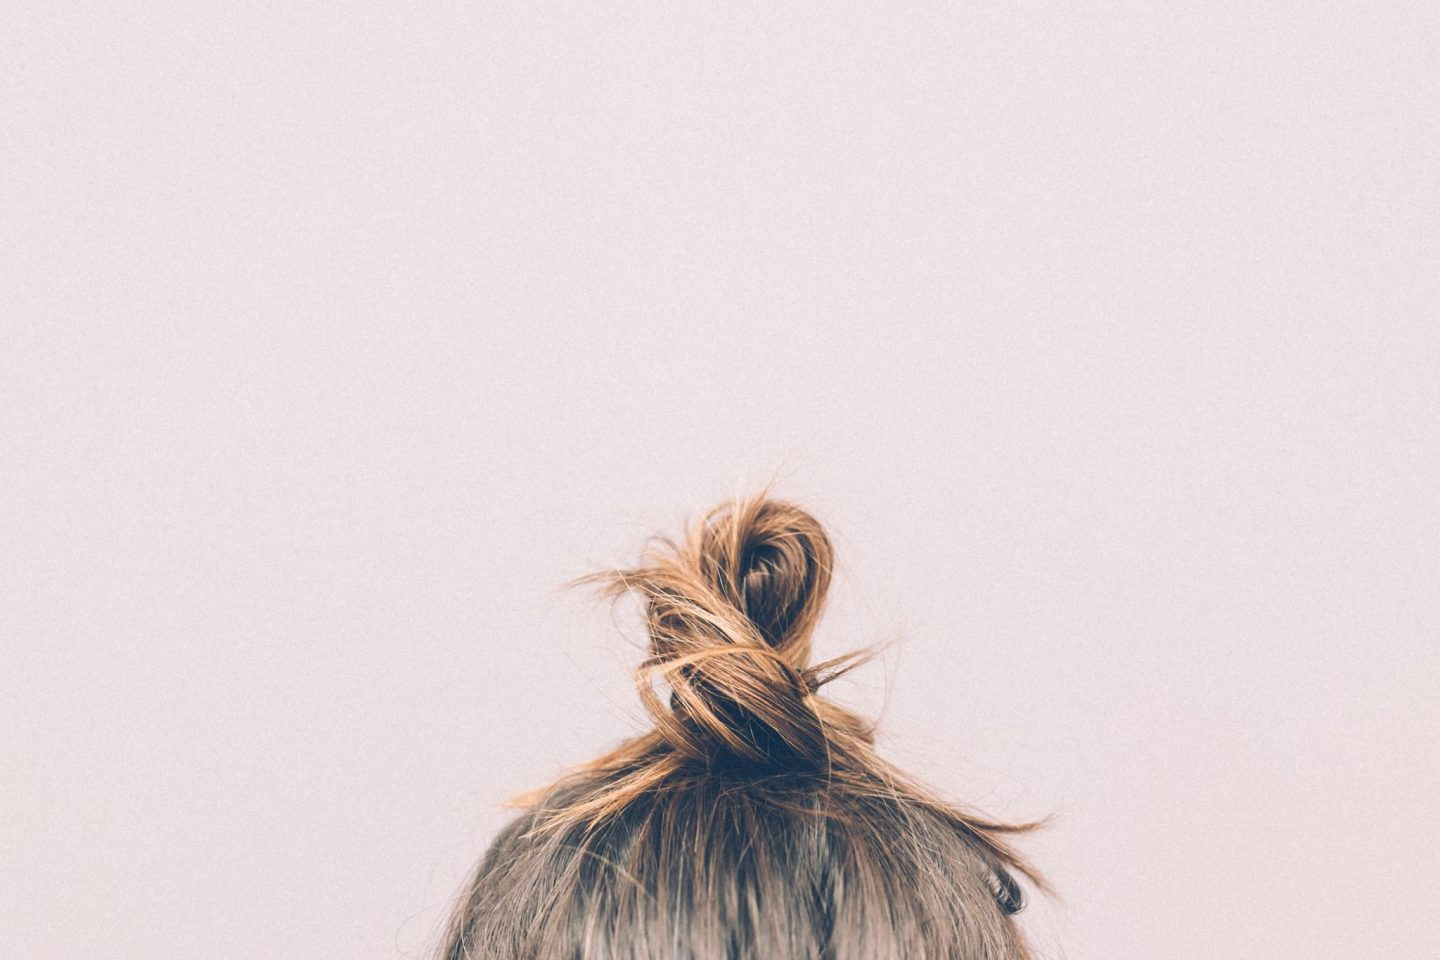 Thinning Hair - Tips to regrow